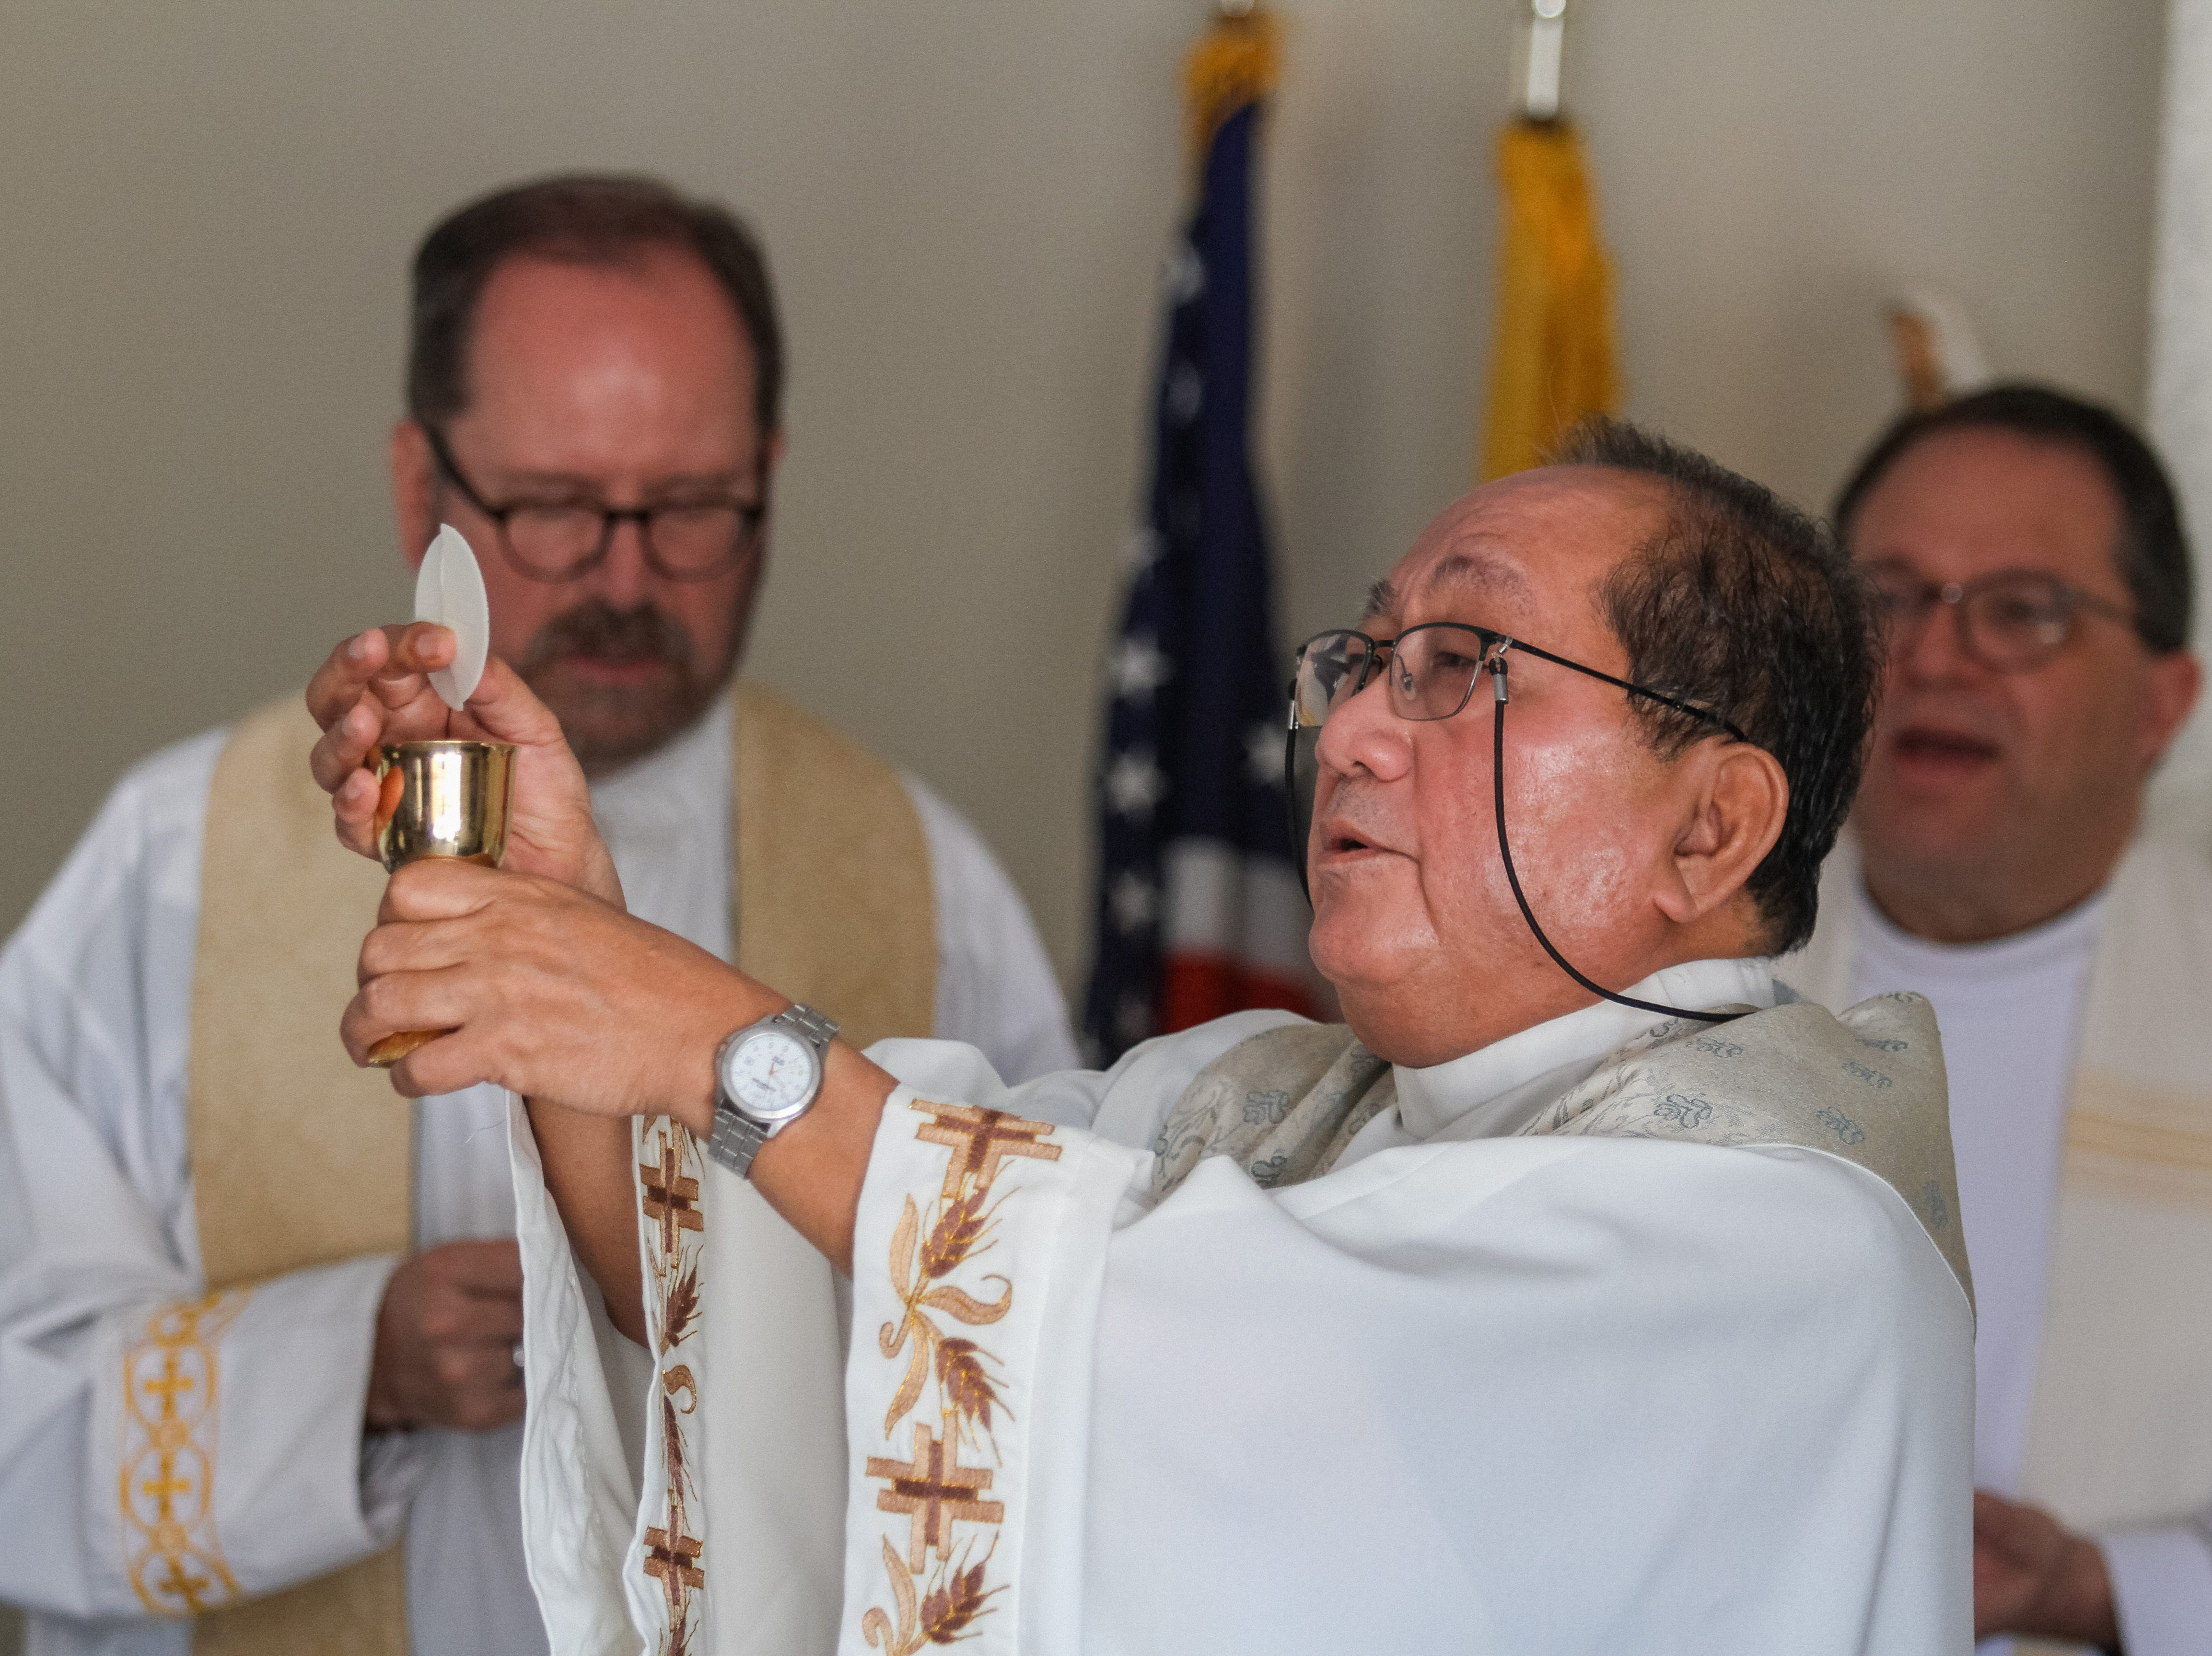 Rev. Reggie Carreon of St.  Joseph blesses the bread and wine for Mass hours after St. Joseph Catholic Church in Phoenix caught fire on May 1, 2019.